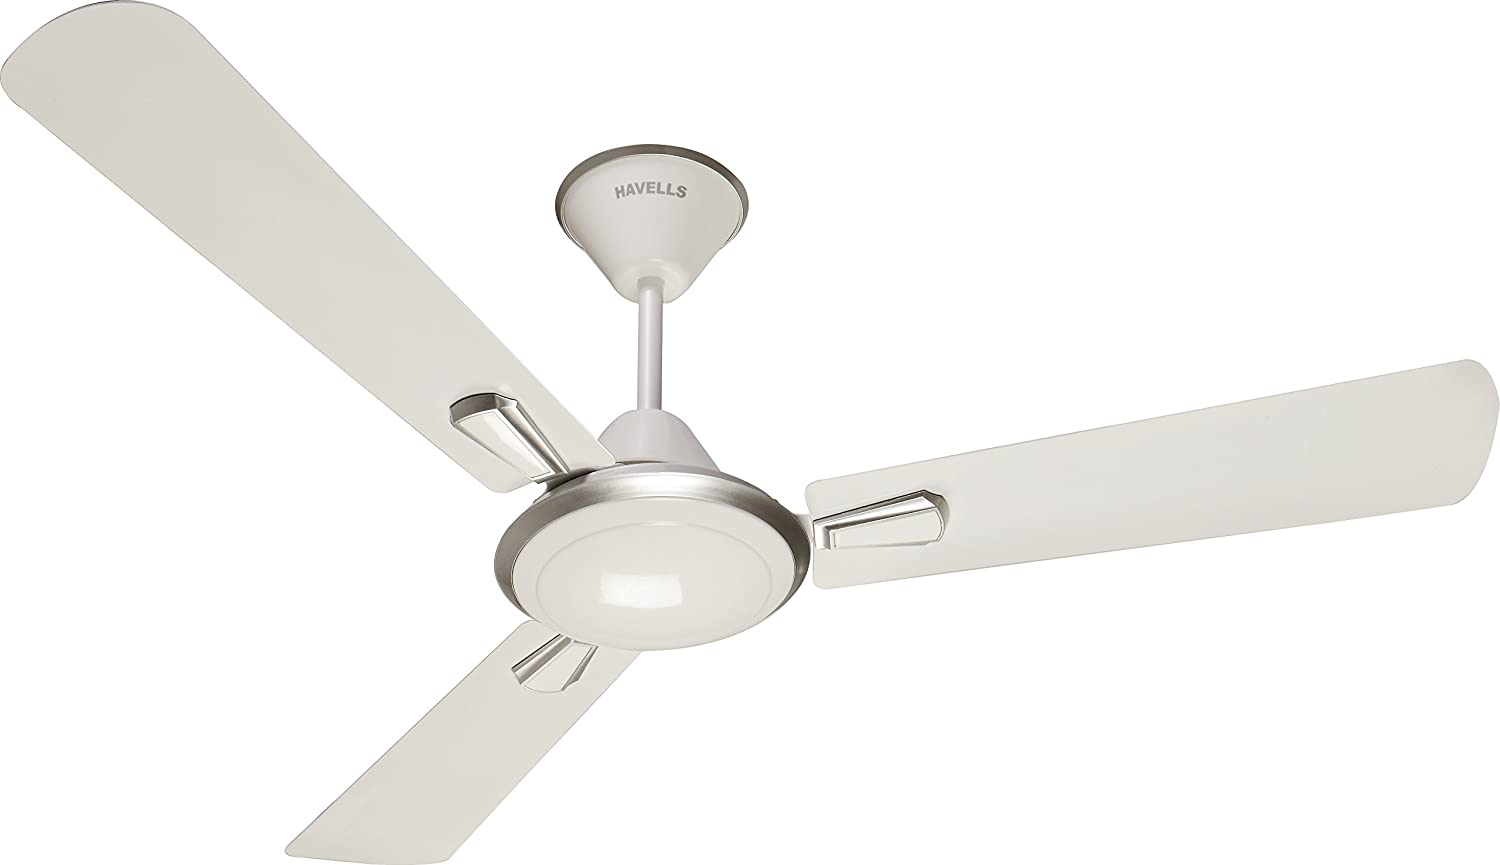 Buy havells furia 1200mm decorative ceiling fan ocean blue buy havells furia 1200mm decorative ceiling fan ocean blue online at low prices in india amazon mozeypictures Images